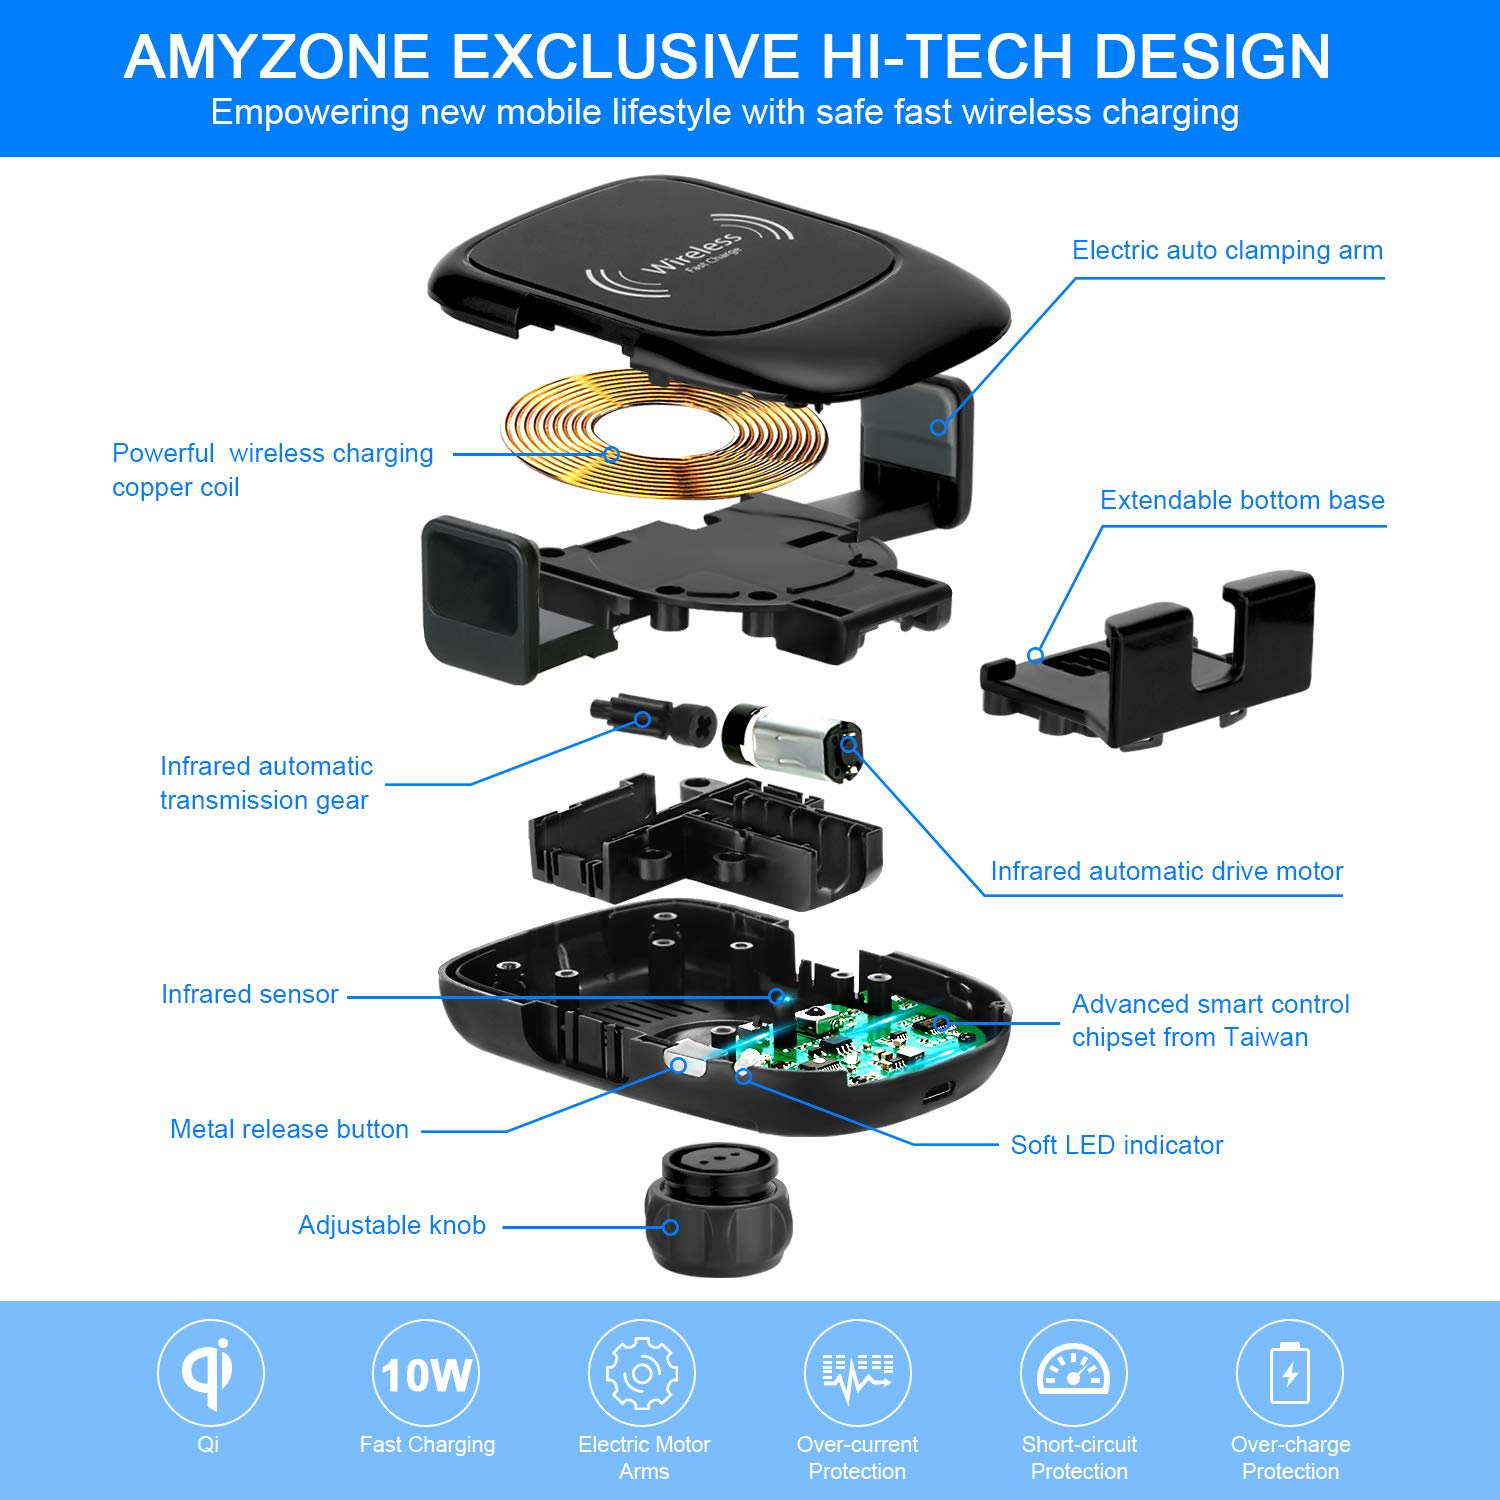 AmyZone Wireless Car Charger Mount Fast Charging Car Phone Holder Qi 10W//7.5W Auto-Matic Clamping Compatible iPhone Xs MAX//XS//XR//X//8//8 Plus Samsung S10//S9//S8//S7 Note 6//7//8//9 Google Pixel 3 XL